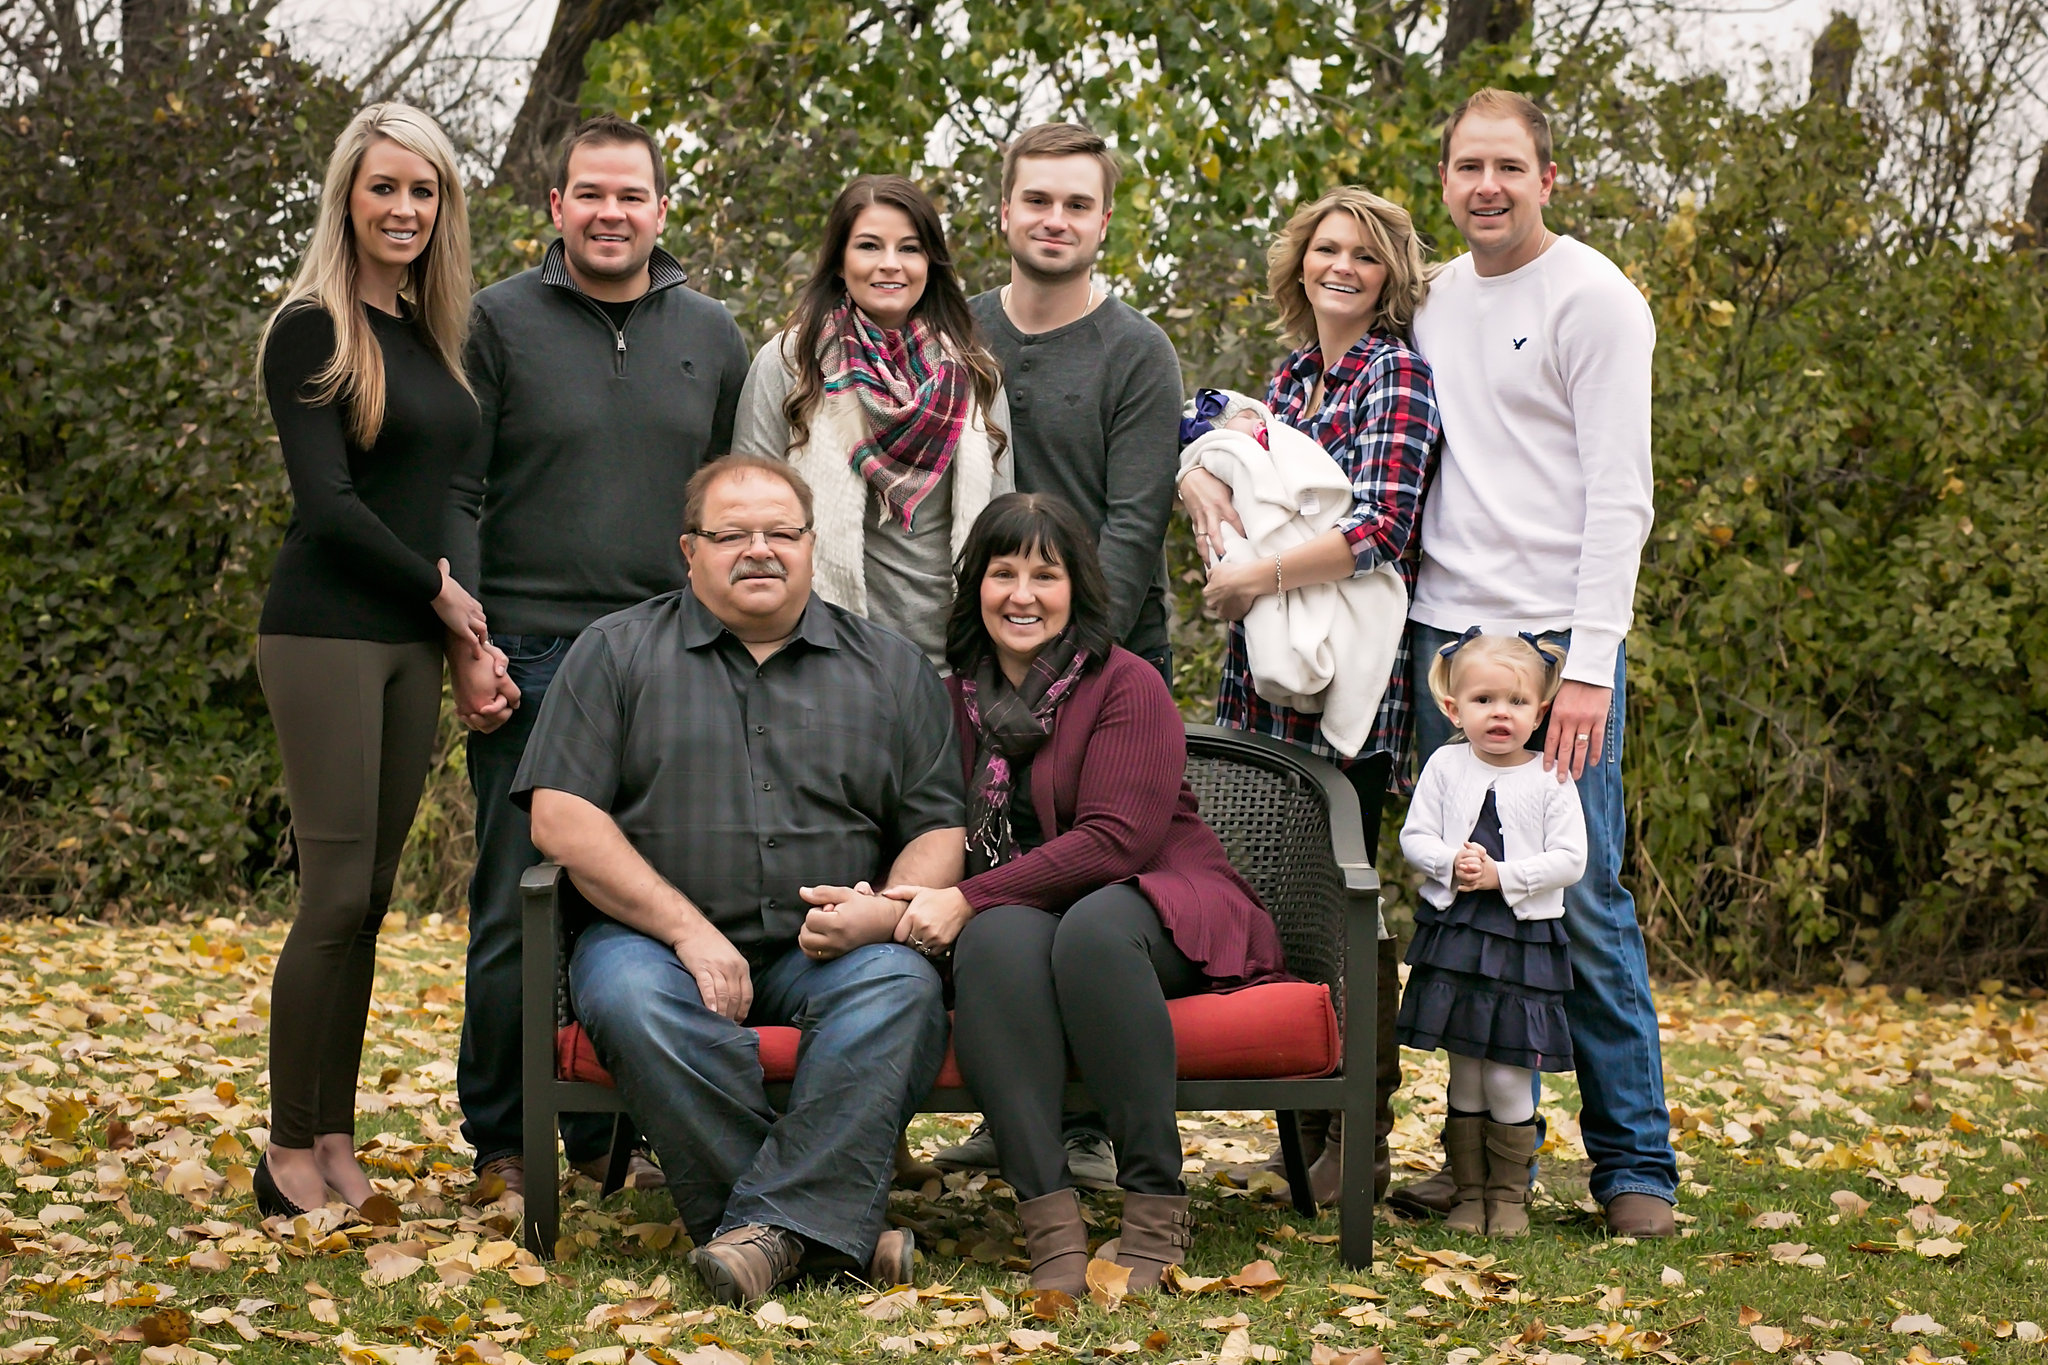 doetzel_family(22of32).jpg